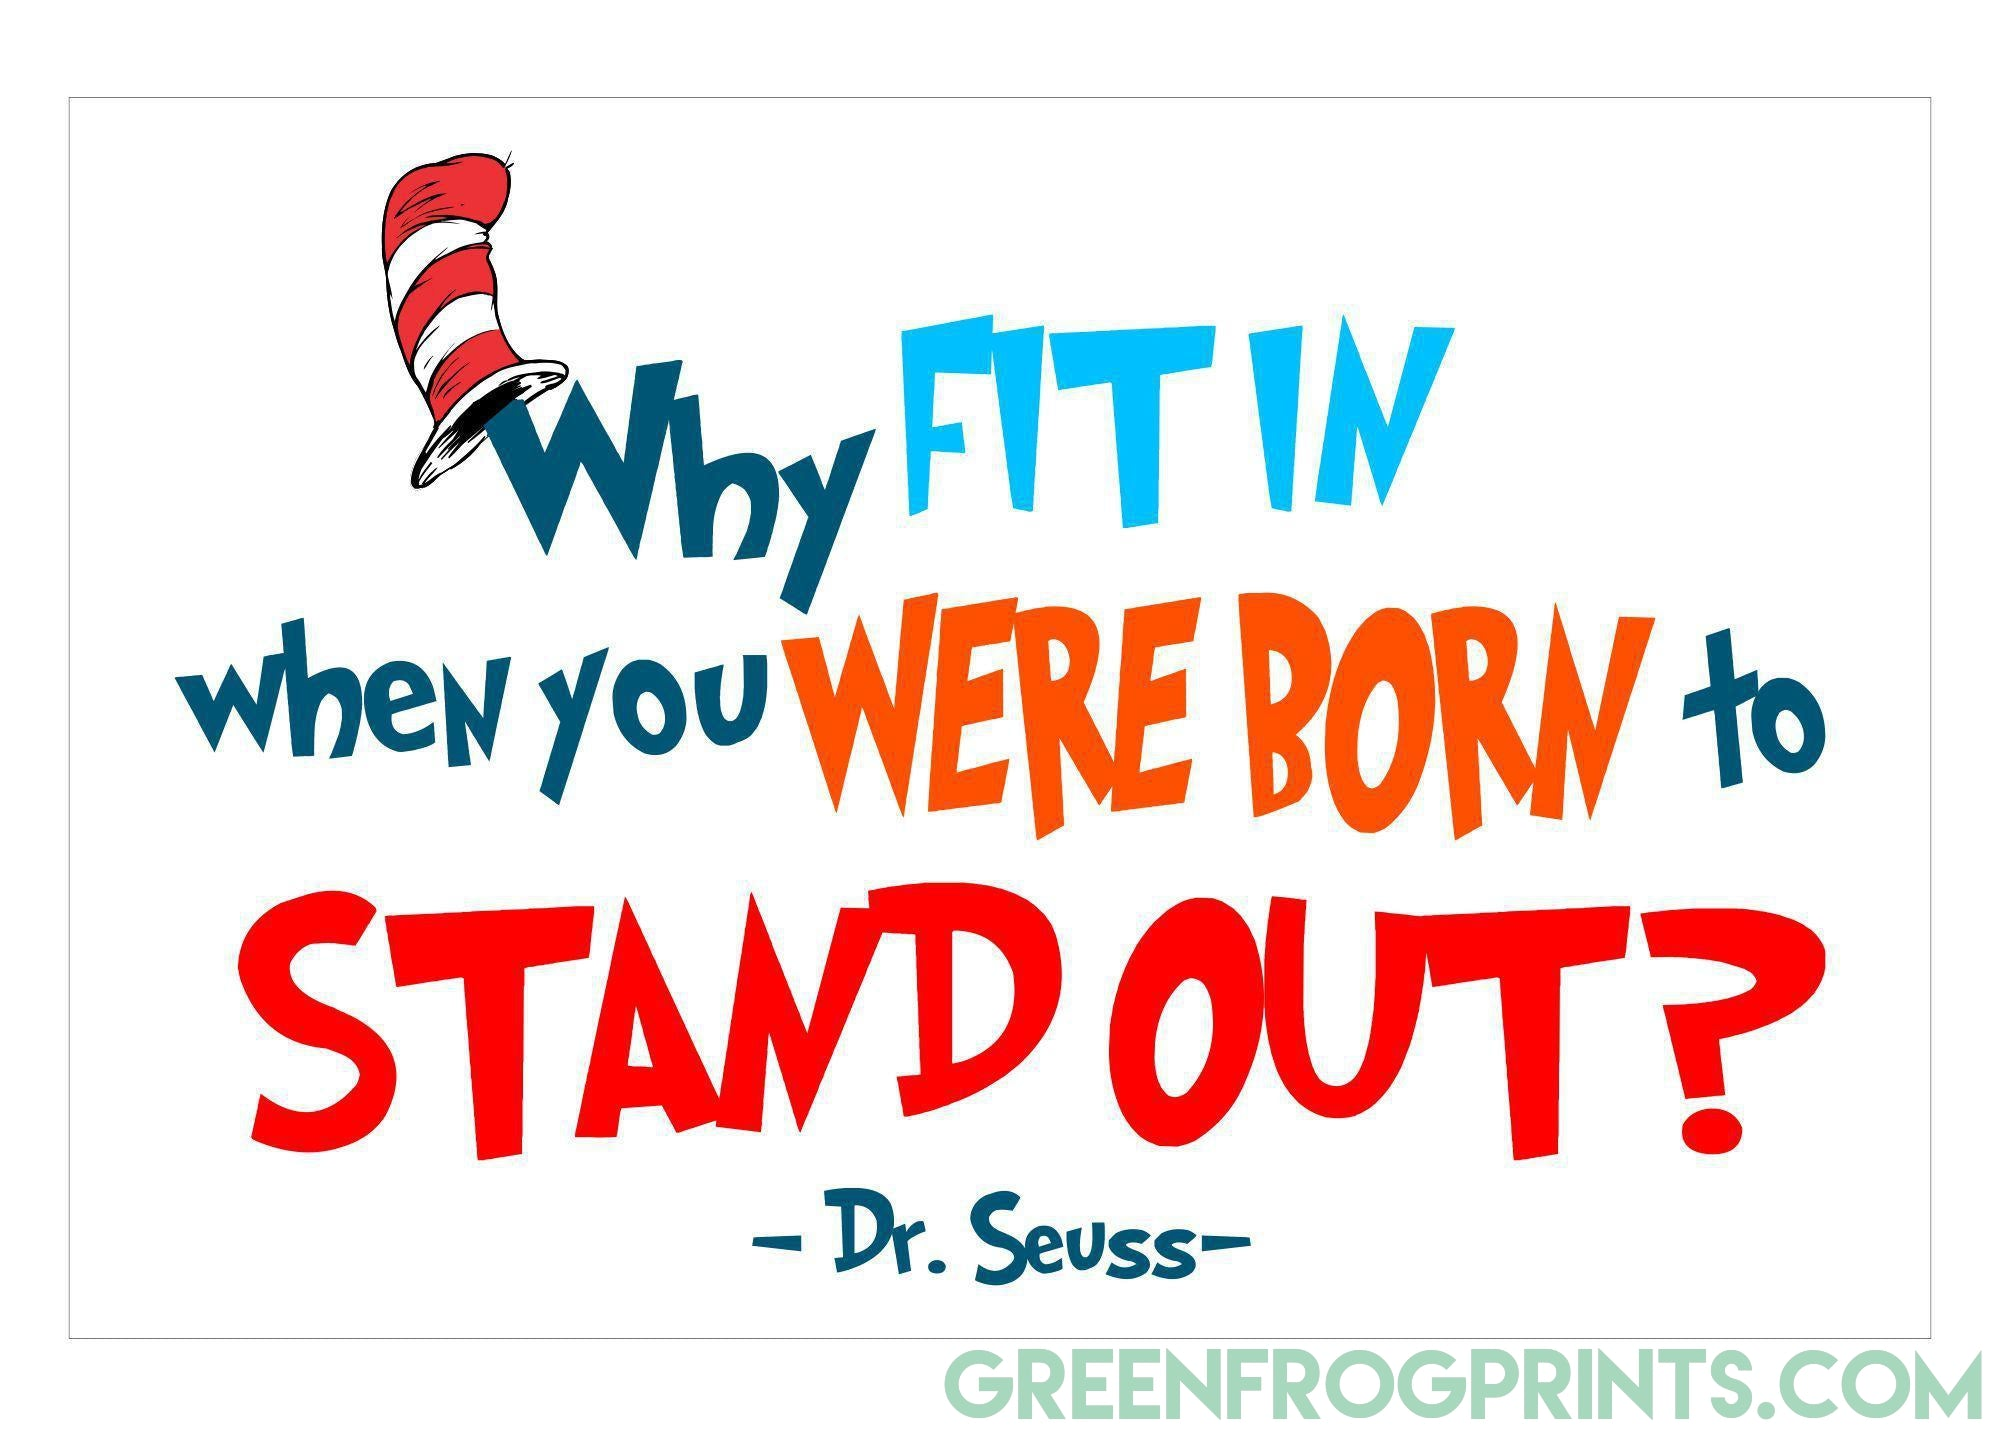 Born To Stand Out Dr Seuss Colorful Poster Print Wall Poster